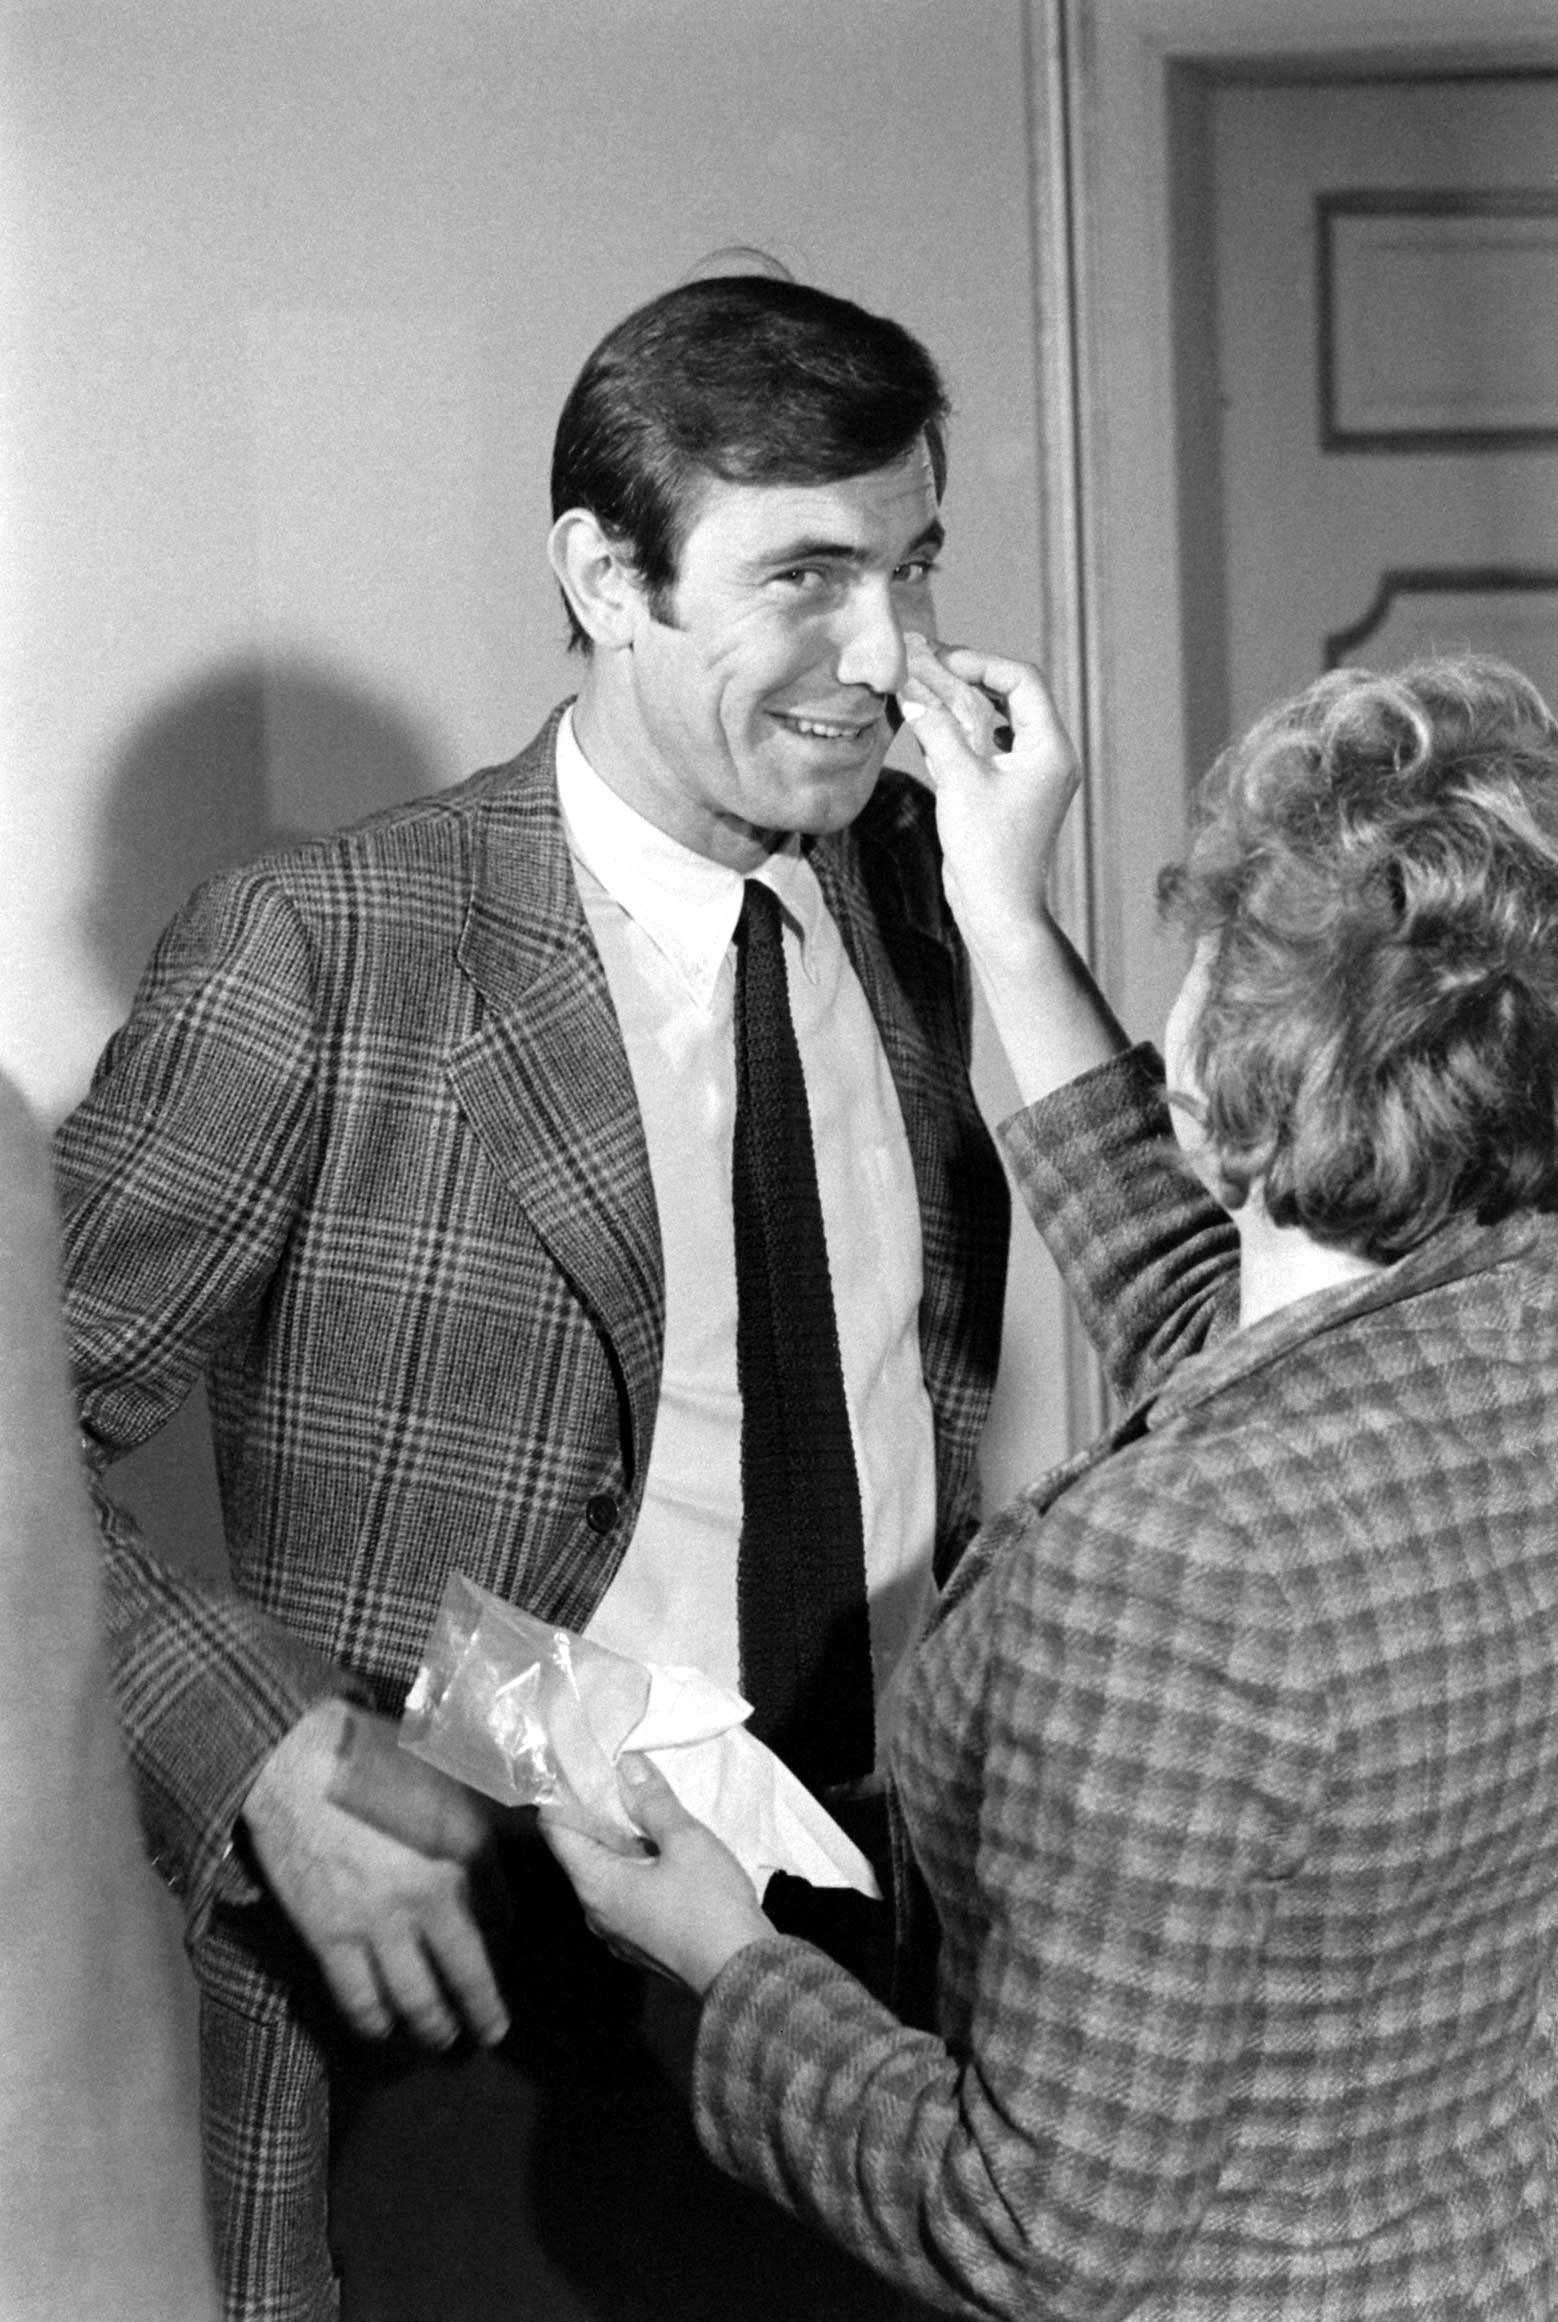 George Lazenby during auditions for the role of James Bond, 1967.